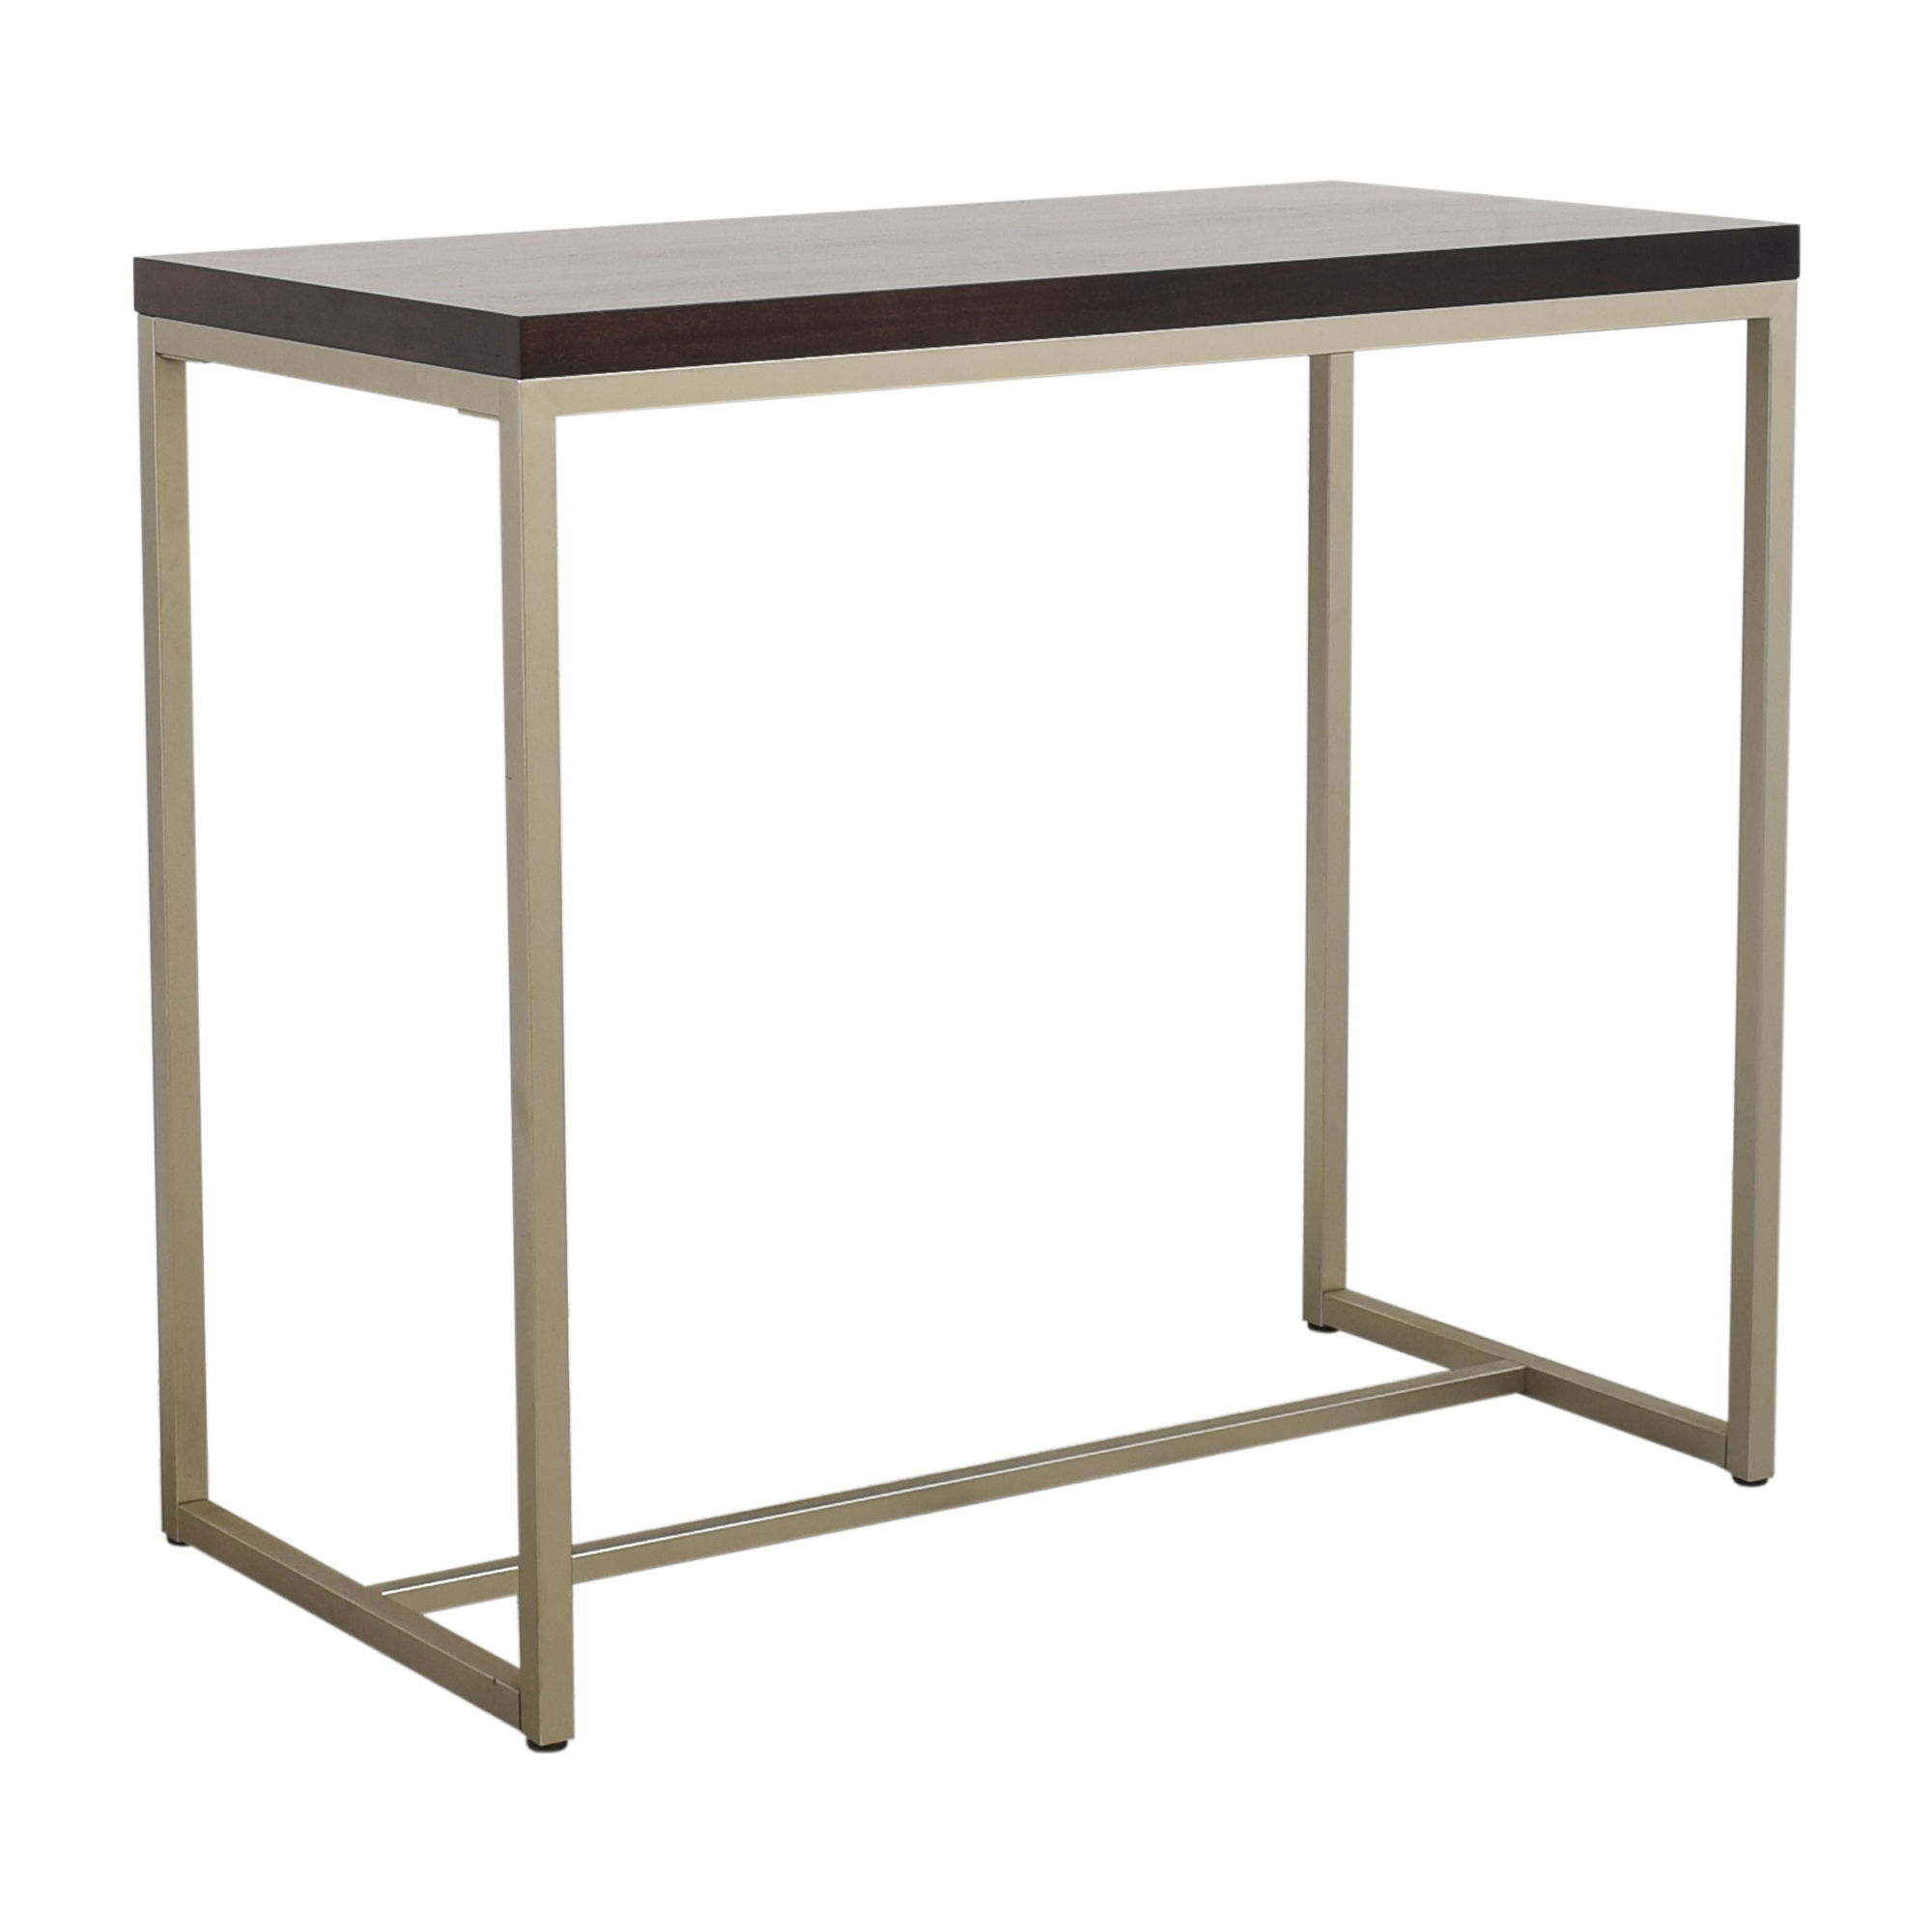 CB2 Box Frame Dining Table / Dinner Tables